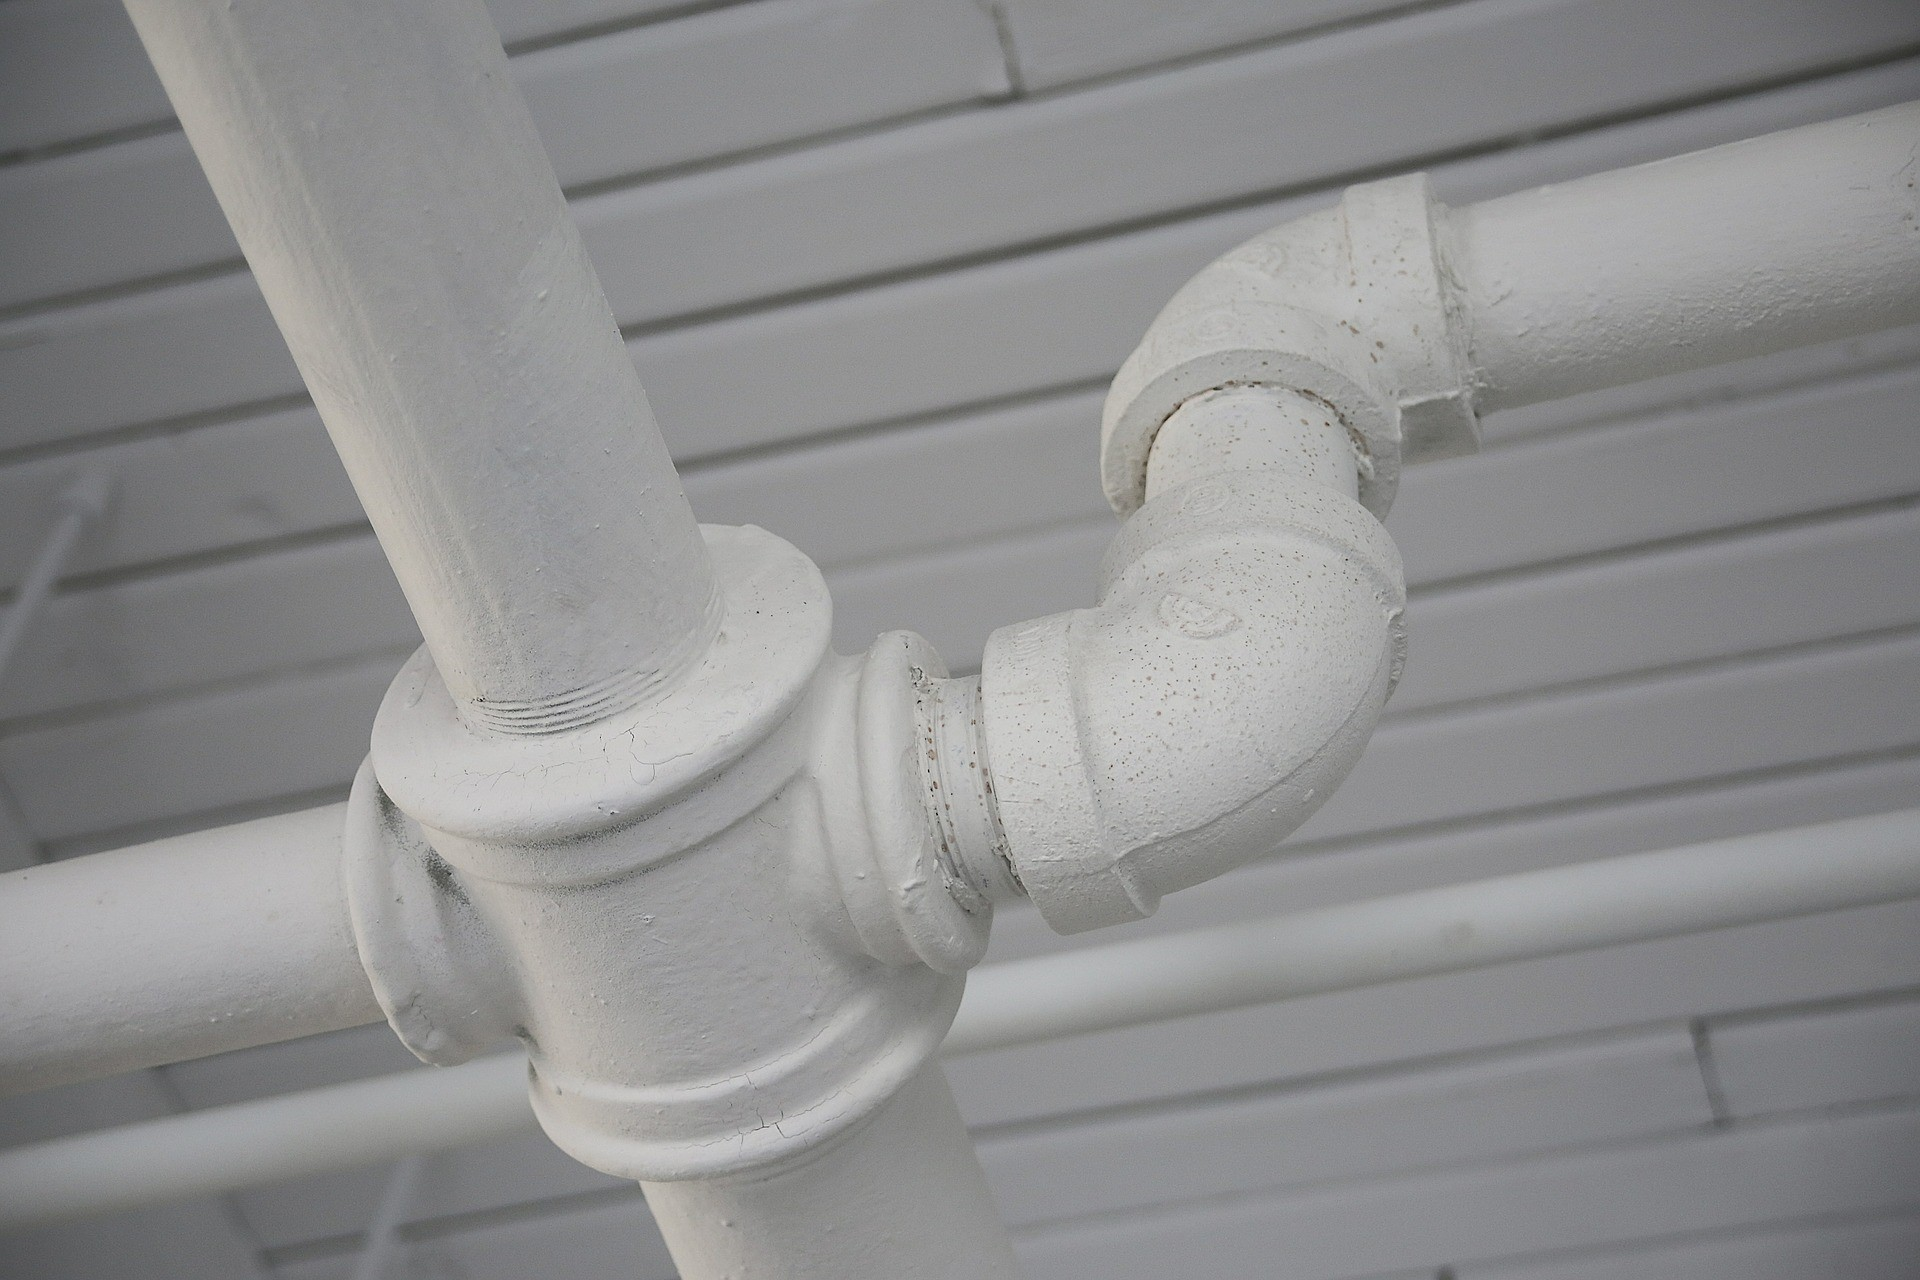 Advice About Maintaining Your Home Sewer Line